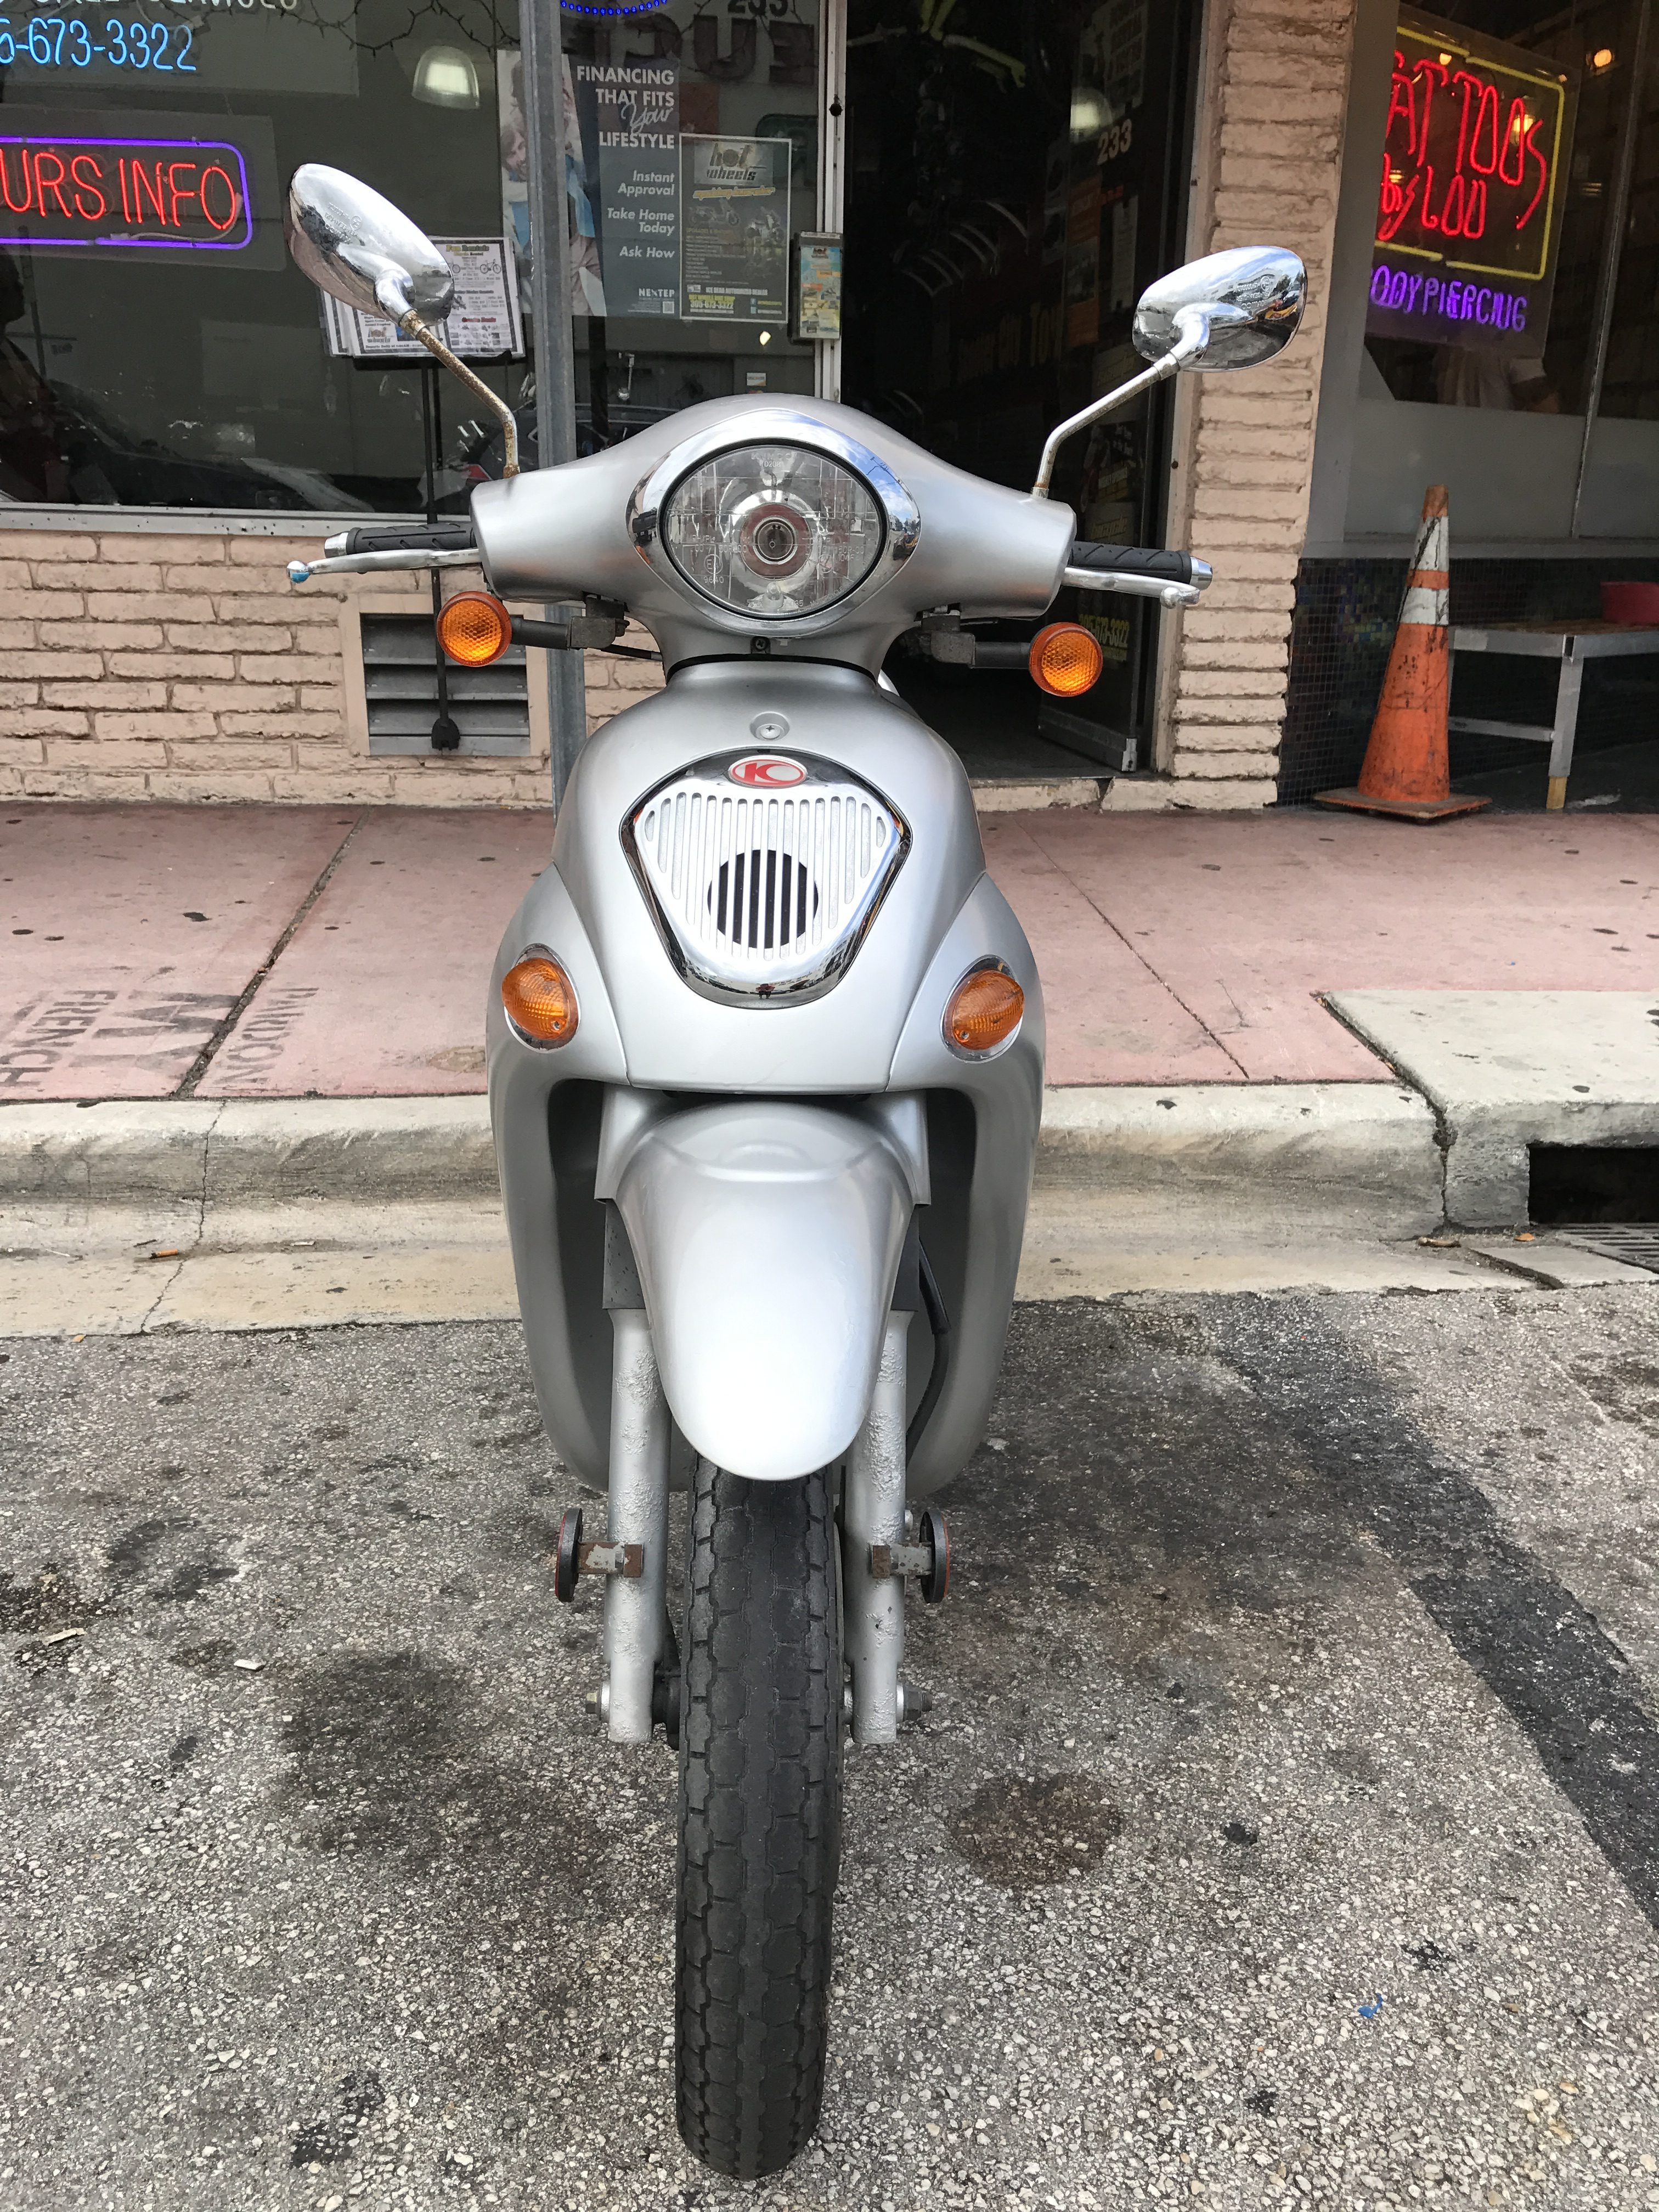 Pre-Owned Scooters - Hot Wheels Rentals